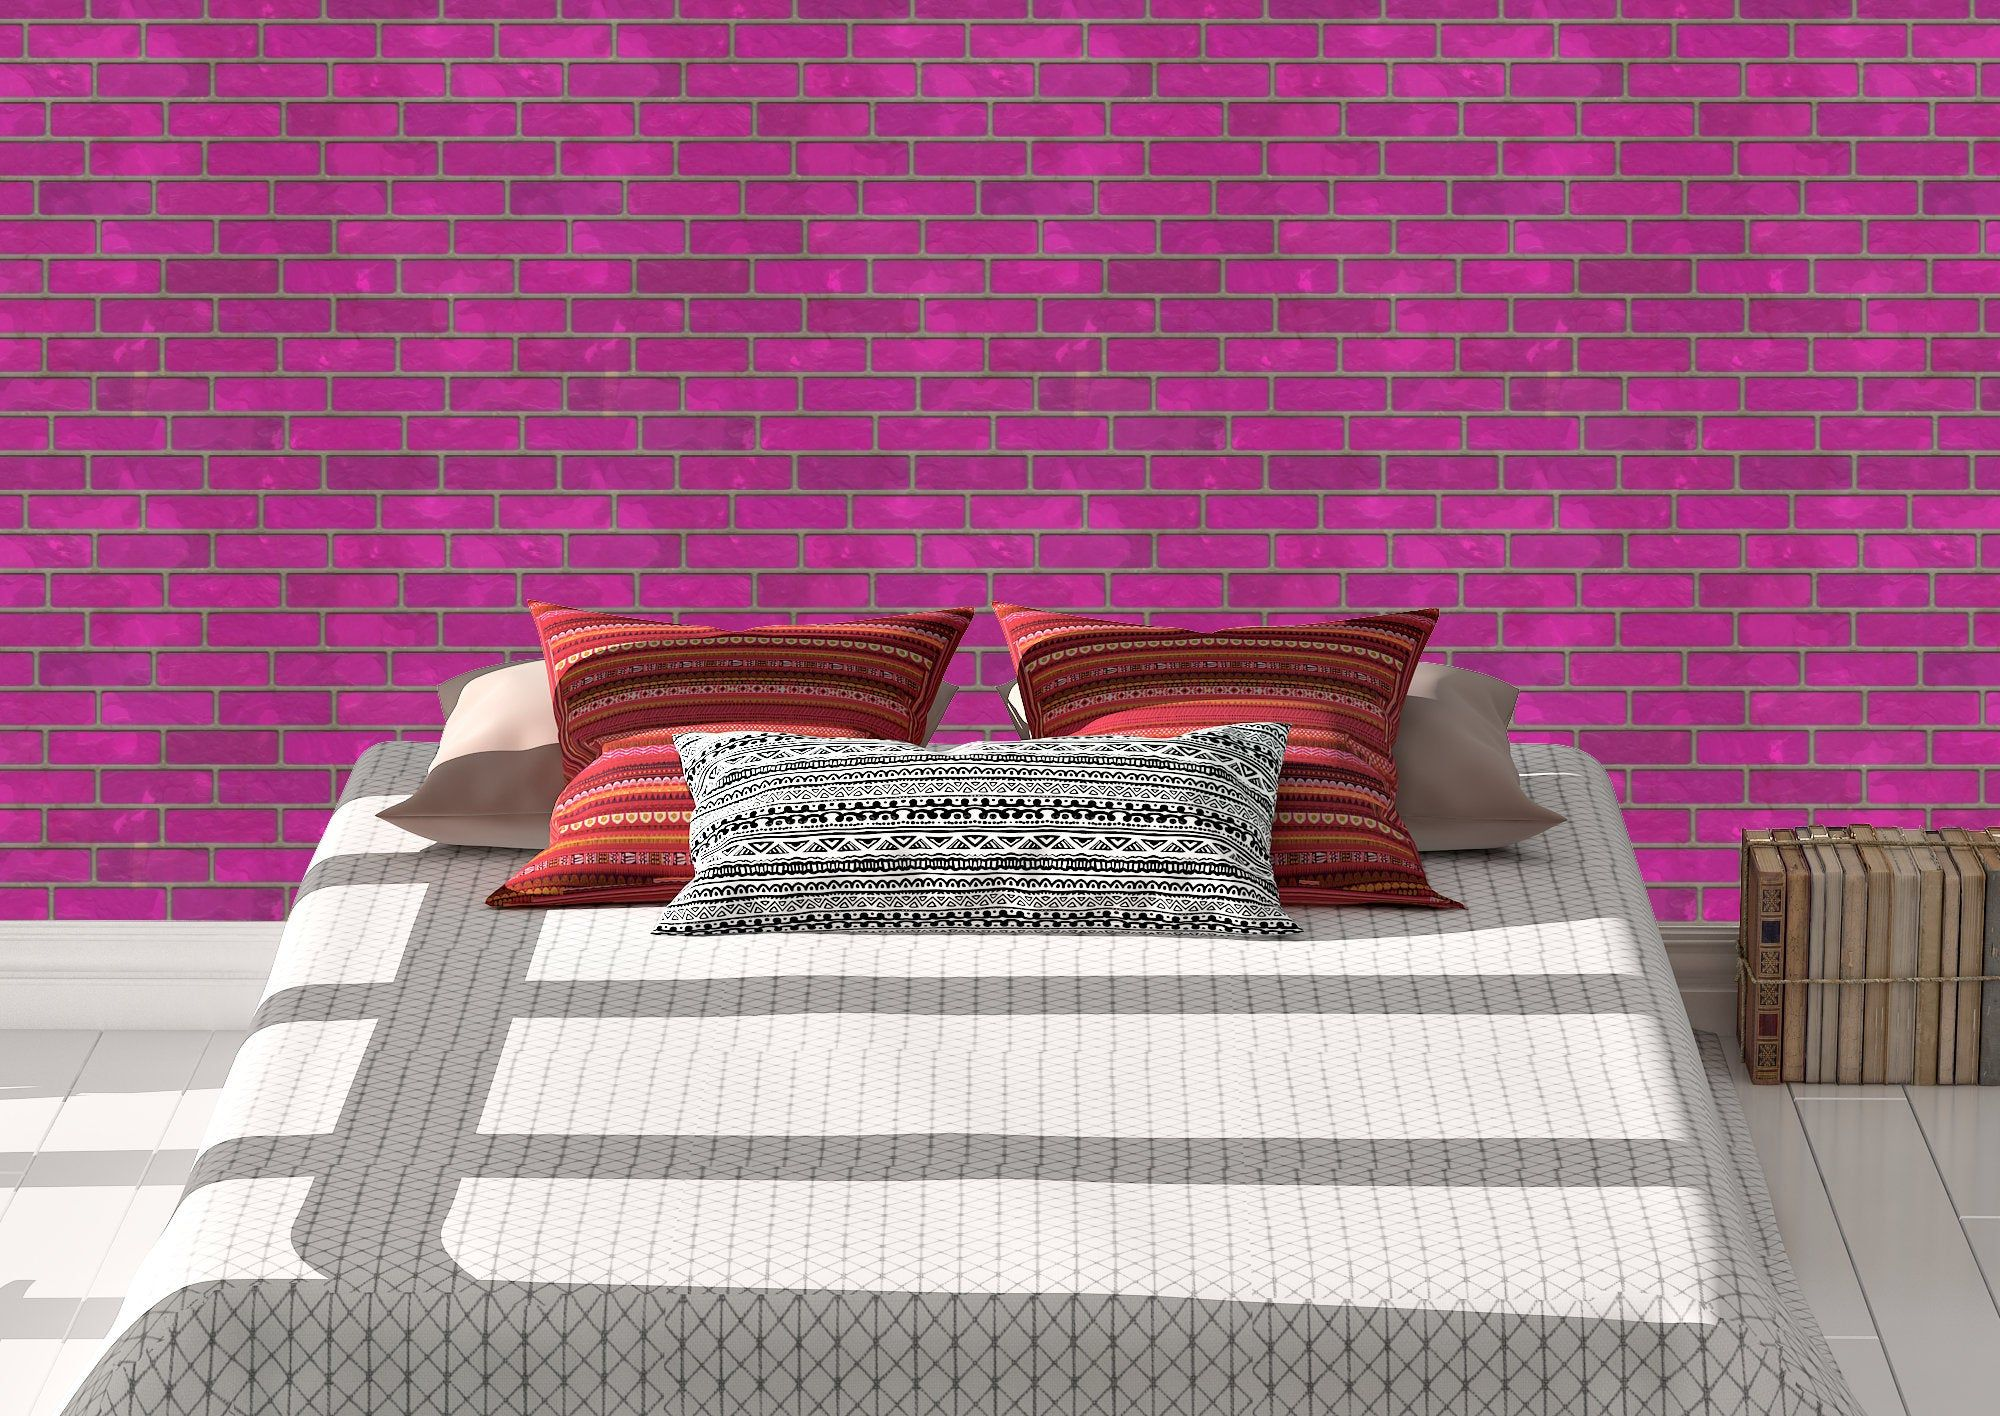 Pink Brick Wallpaper Peel And Stick Removeable Repositionable Wall Decor Art By Whizbangwallpaper Brick Wallpaper Peel And Stick Brick Wallpaper Wall Art Decor